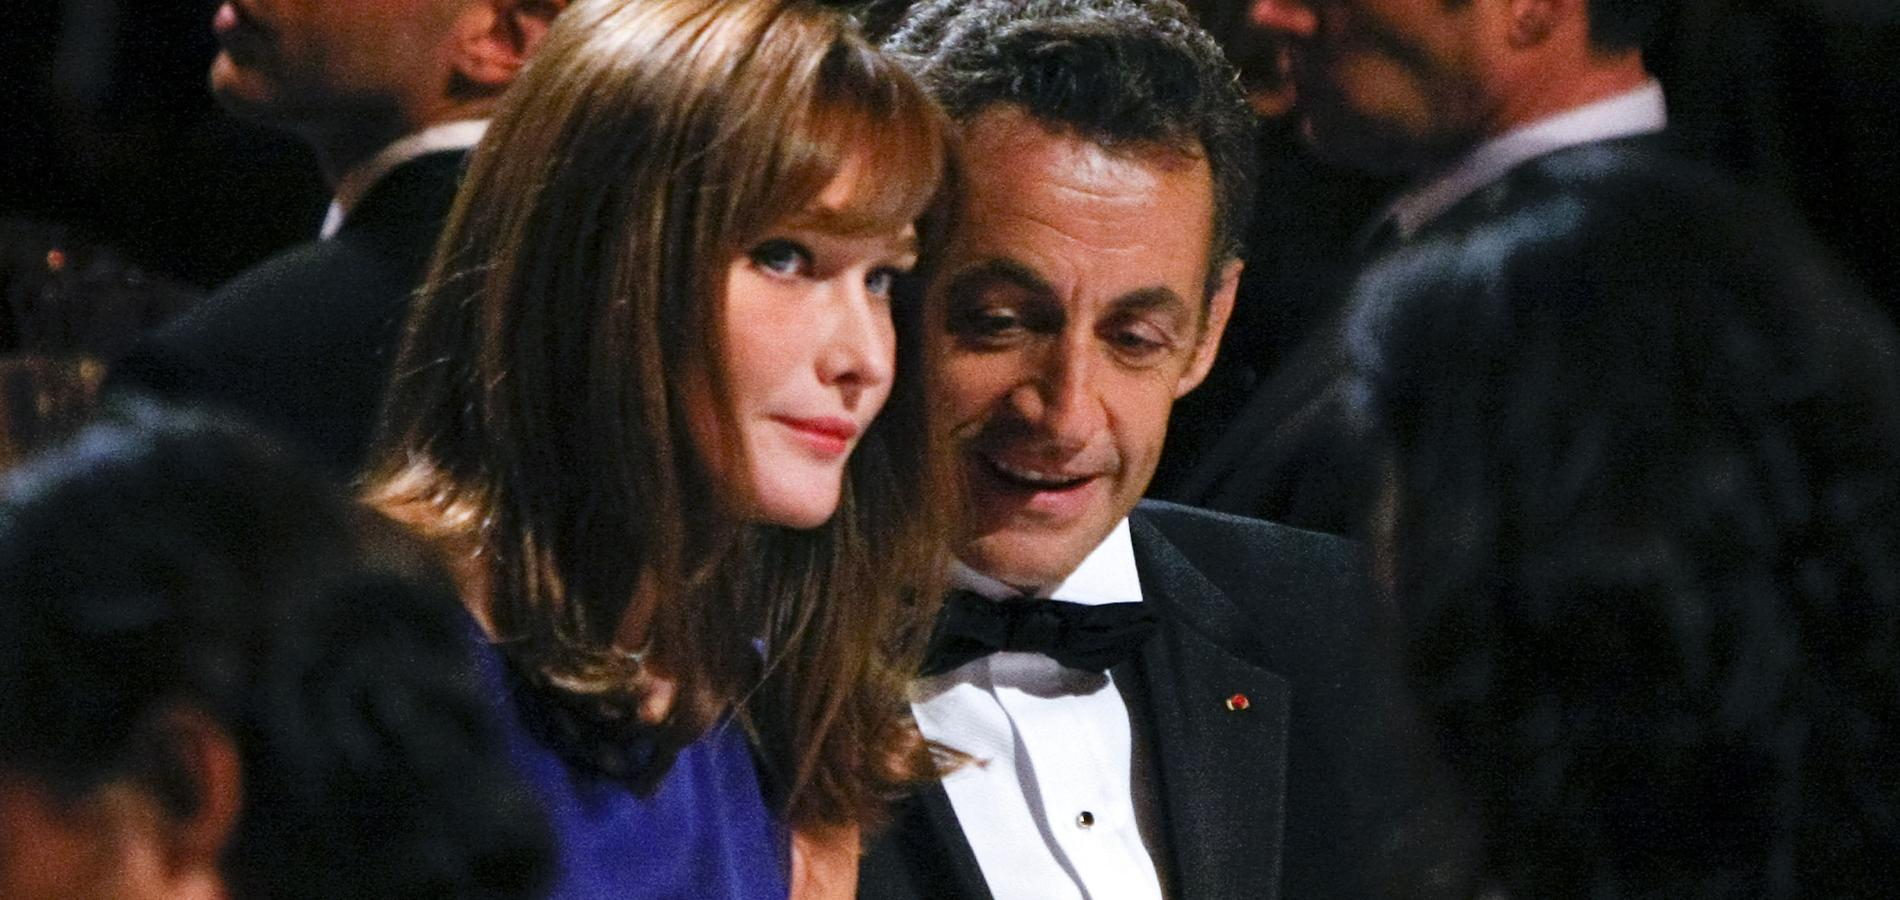 Image result for carla bruni sarkozy